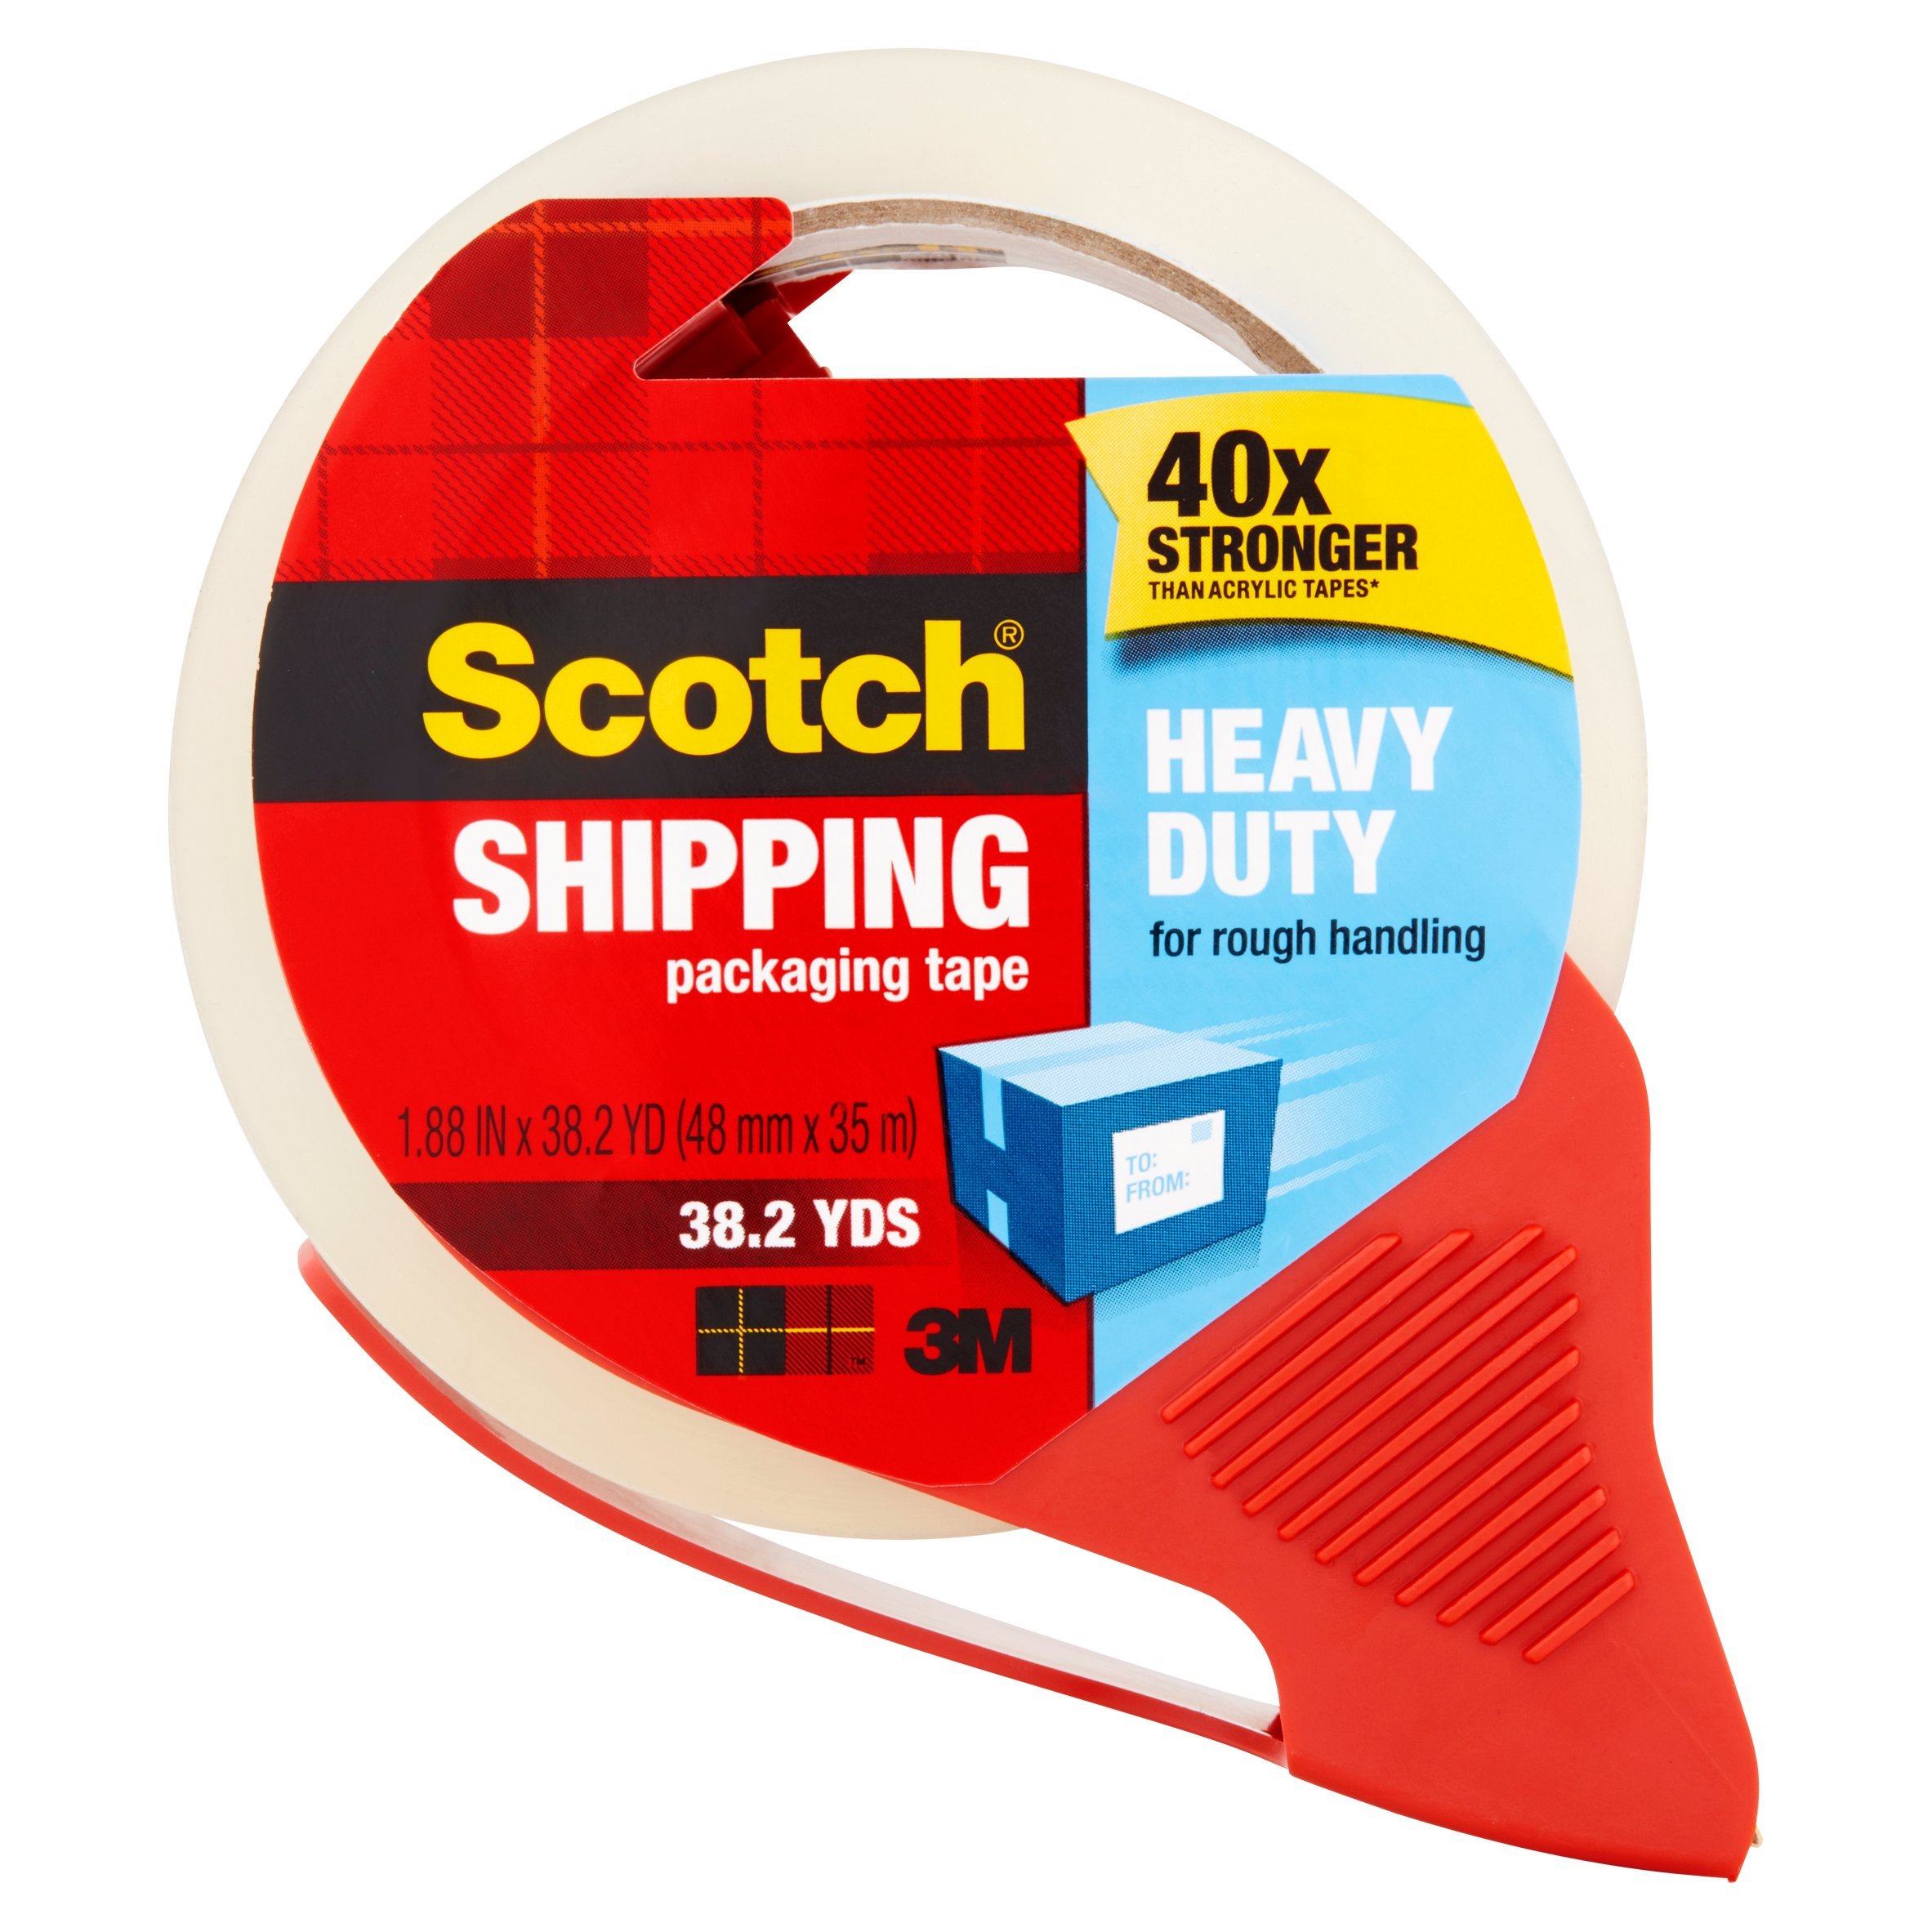 Scotch Heavy Duty Shipping & Packaging Tape with Dispenser, 1.88 in. x 38.2 yd. per Roll, Clear, 1 Dispenser/Pack